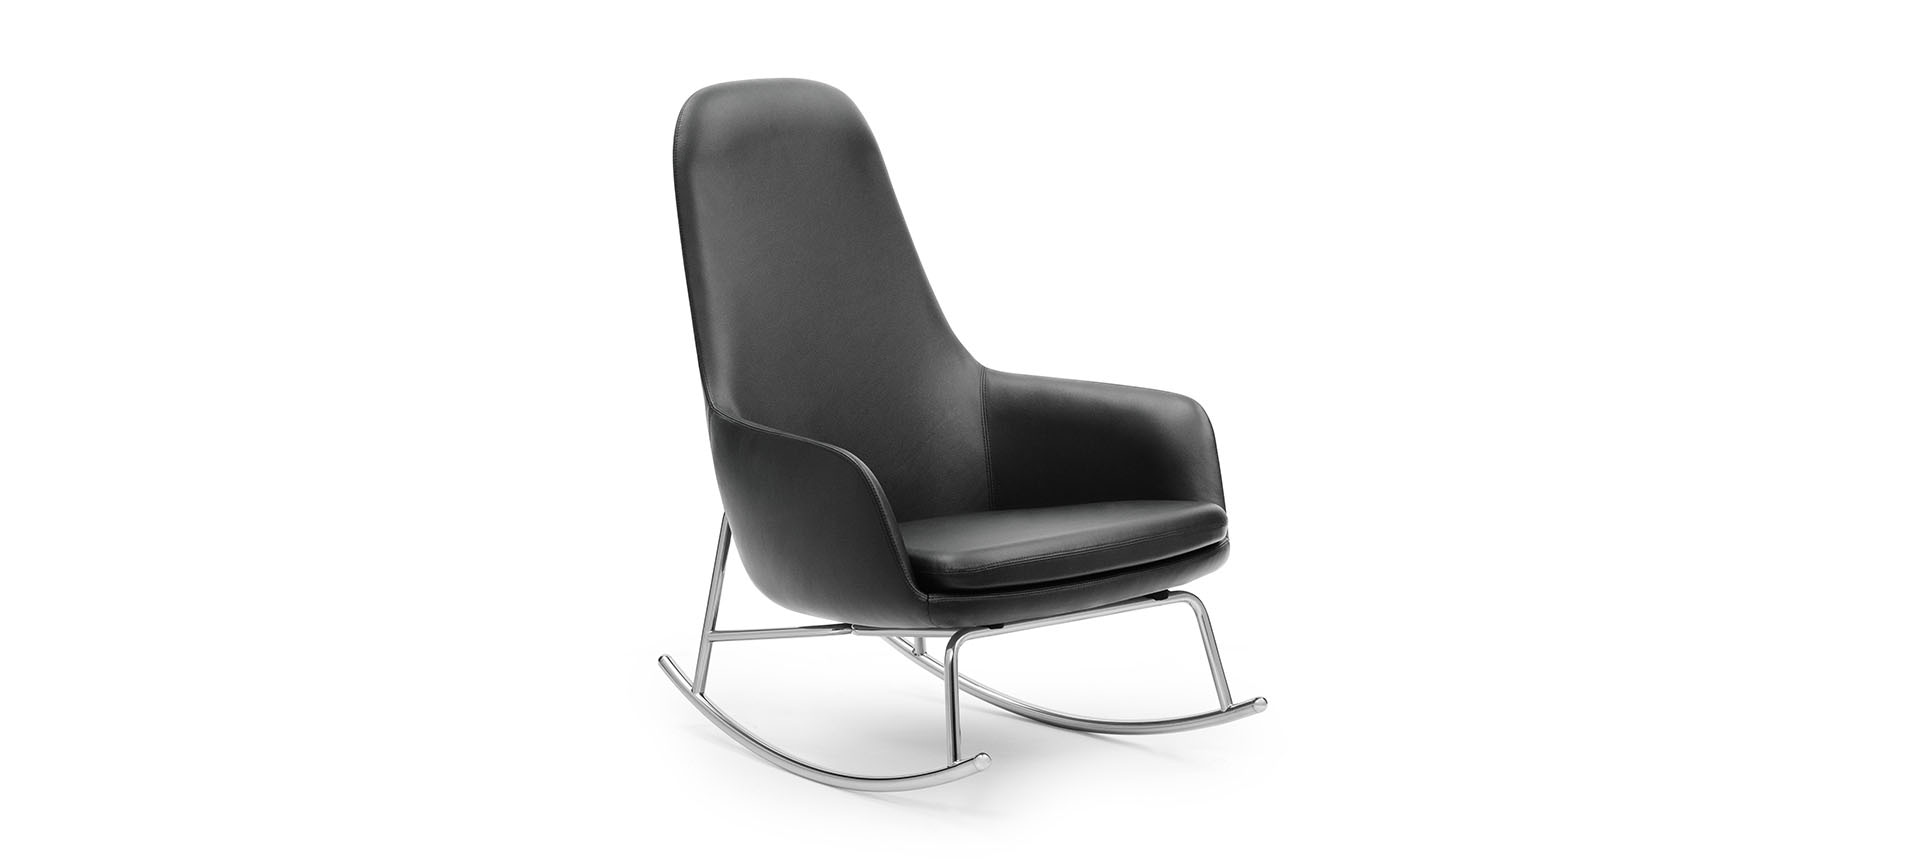 rocking chair era haut normann copenhagen blou. Black Bedroom Furniture Sets. Home Design Ideas